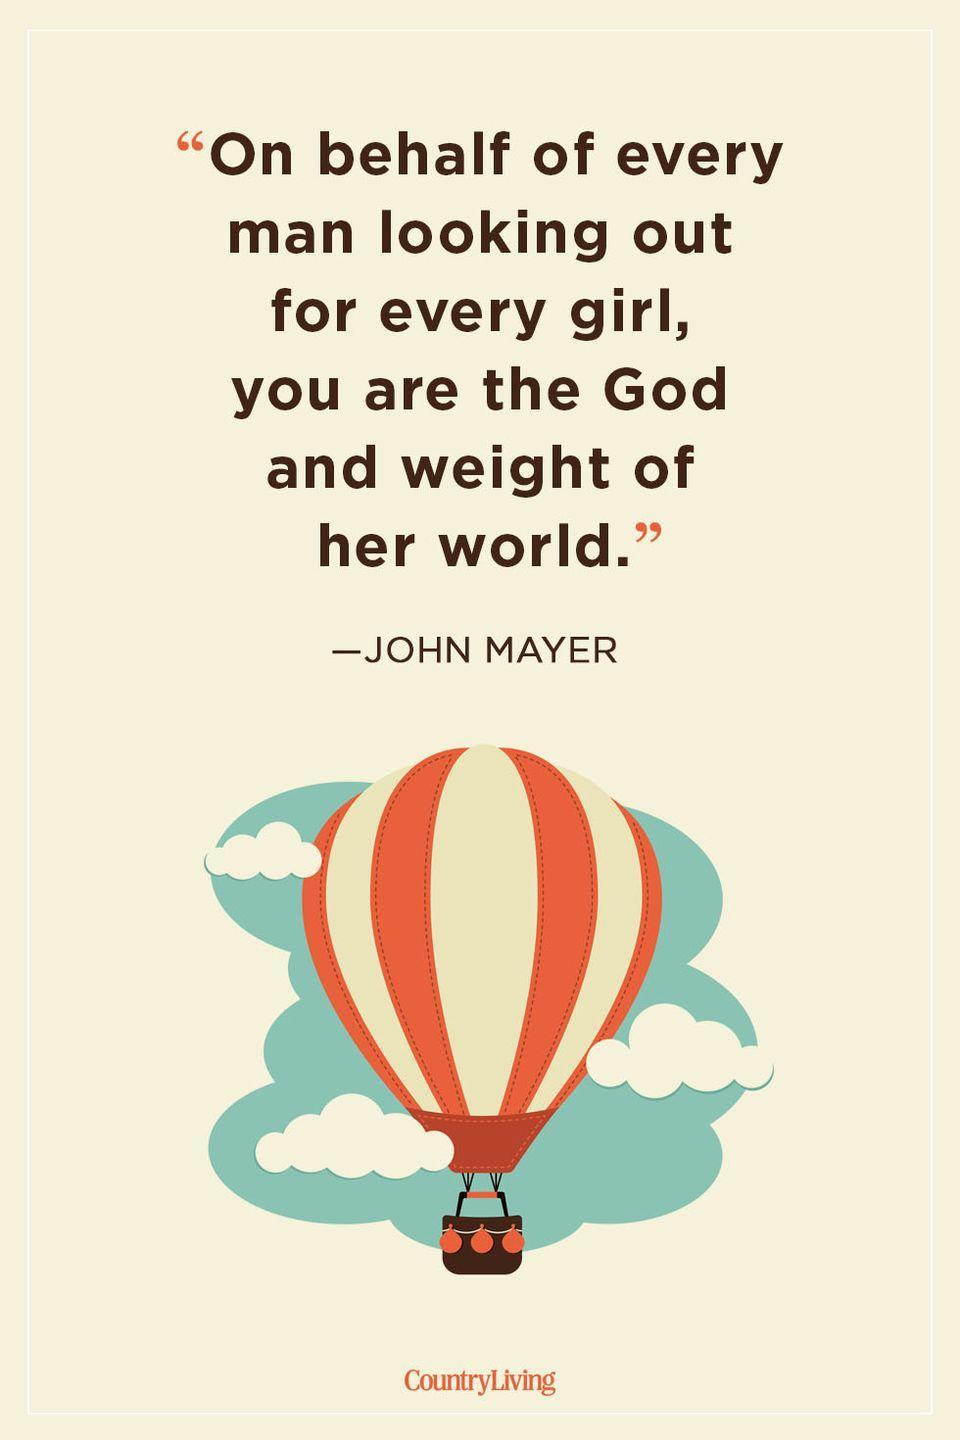 "<p>""On behalf of every man looking out for every girl, you are the God and weight of her world.""</p>"